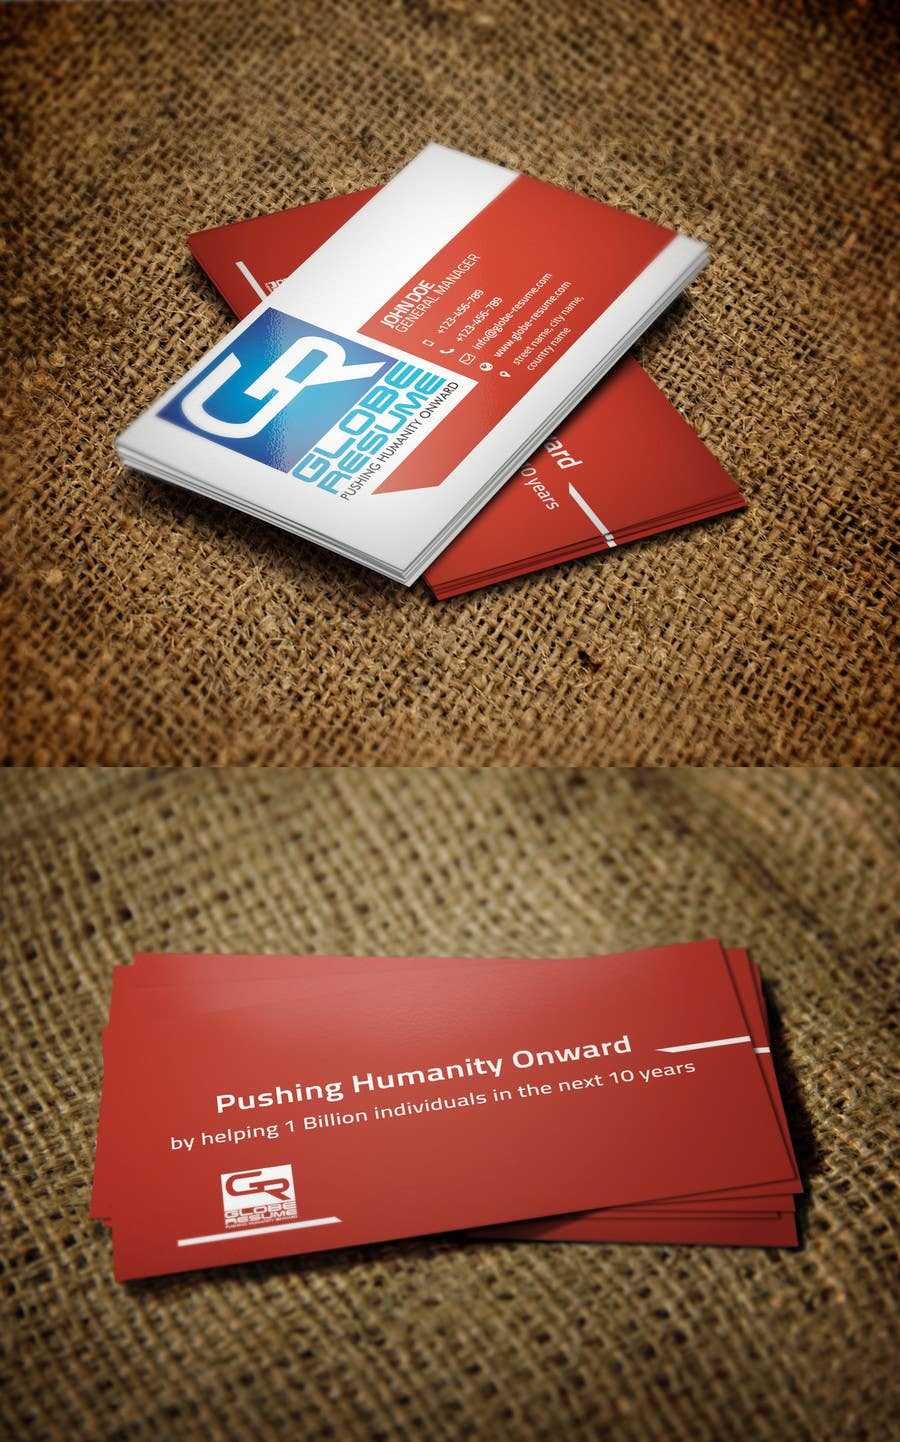 Konkurrenceindlæg #729 for Top business card designs - show off your work!